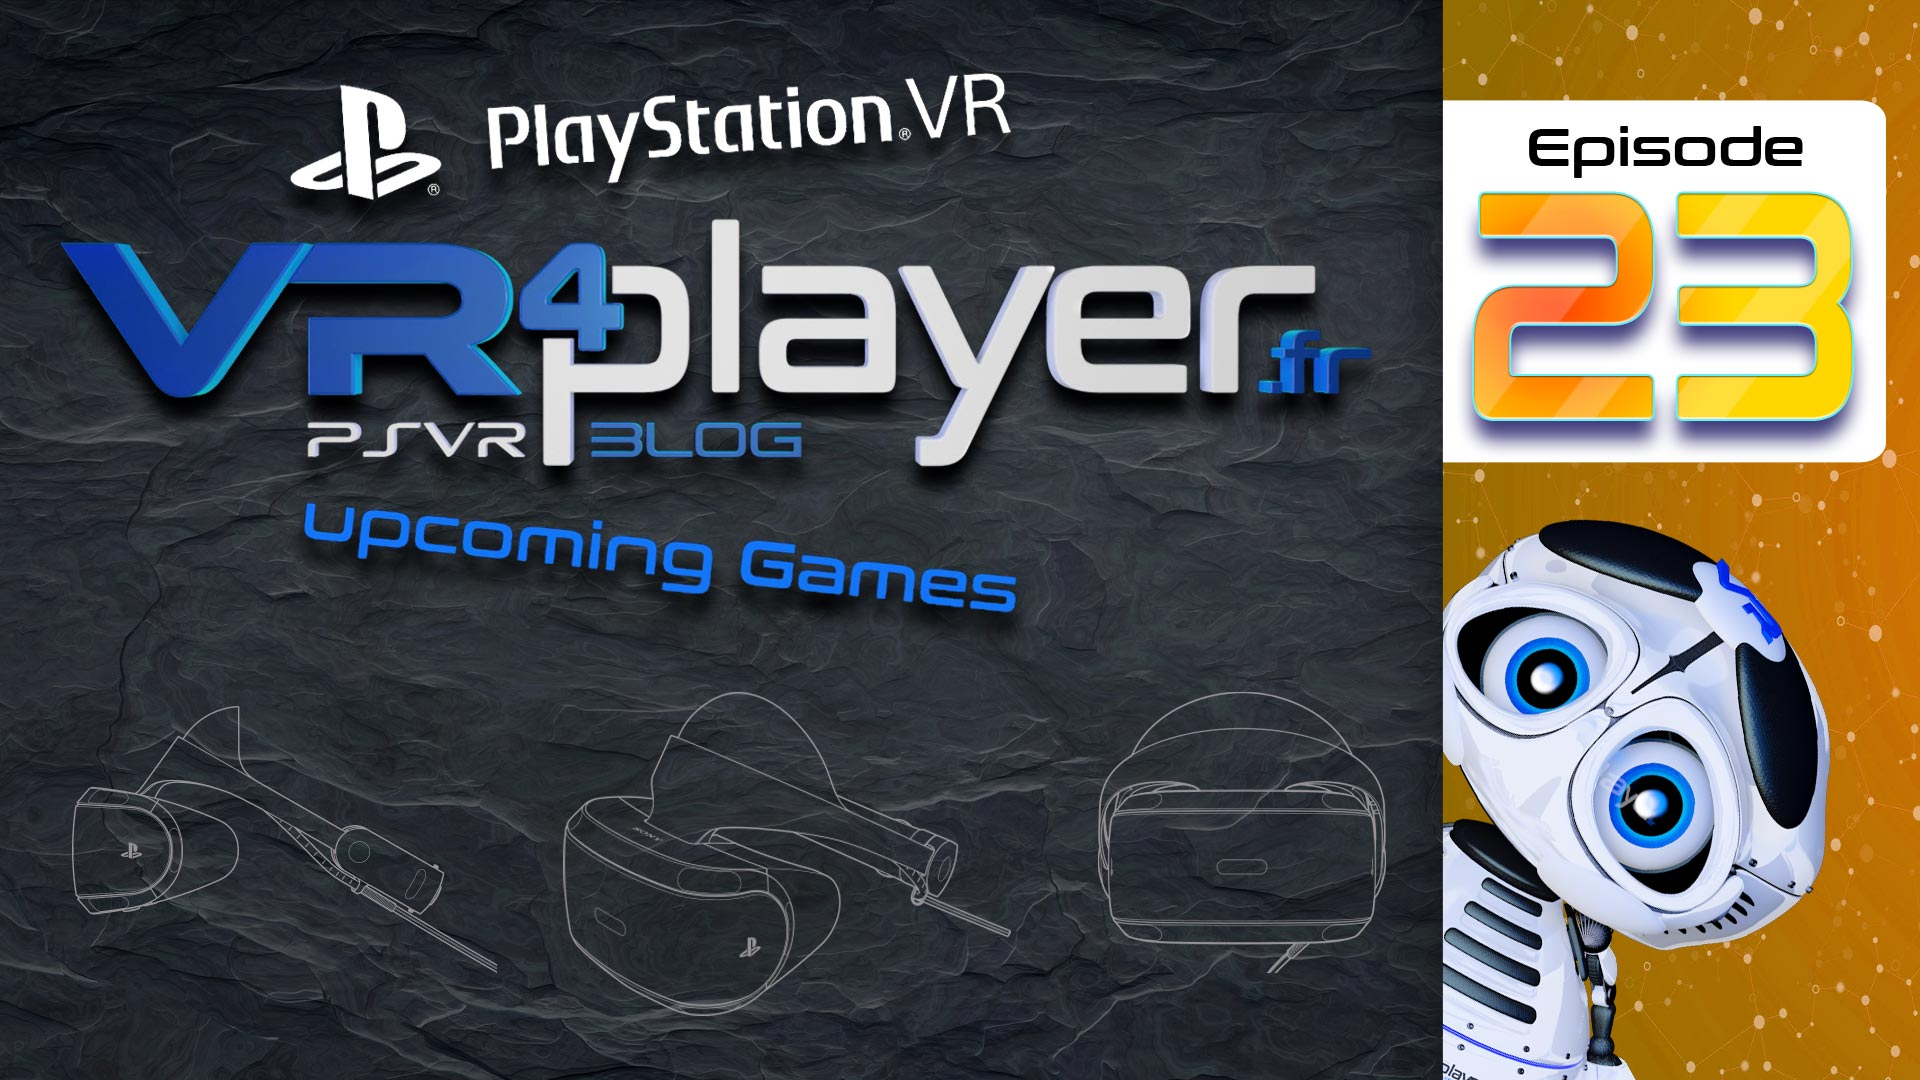 Upcoming games PlayStation VR VR4player.fr episode 23